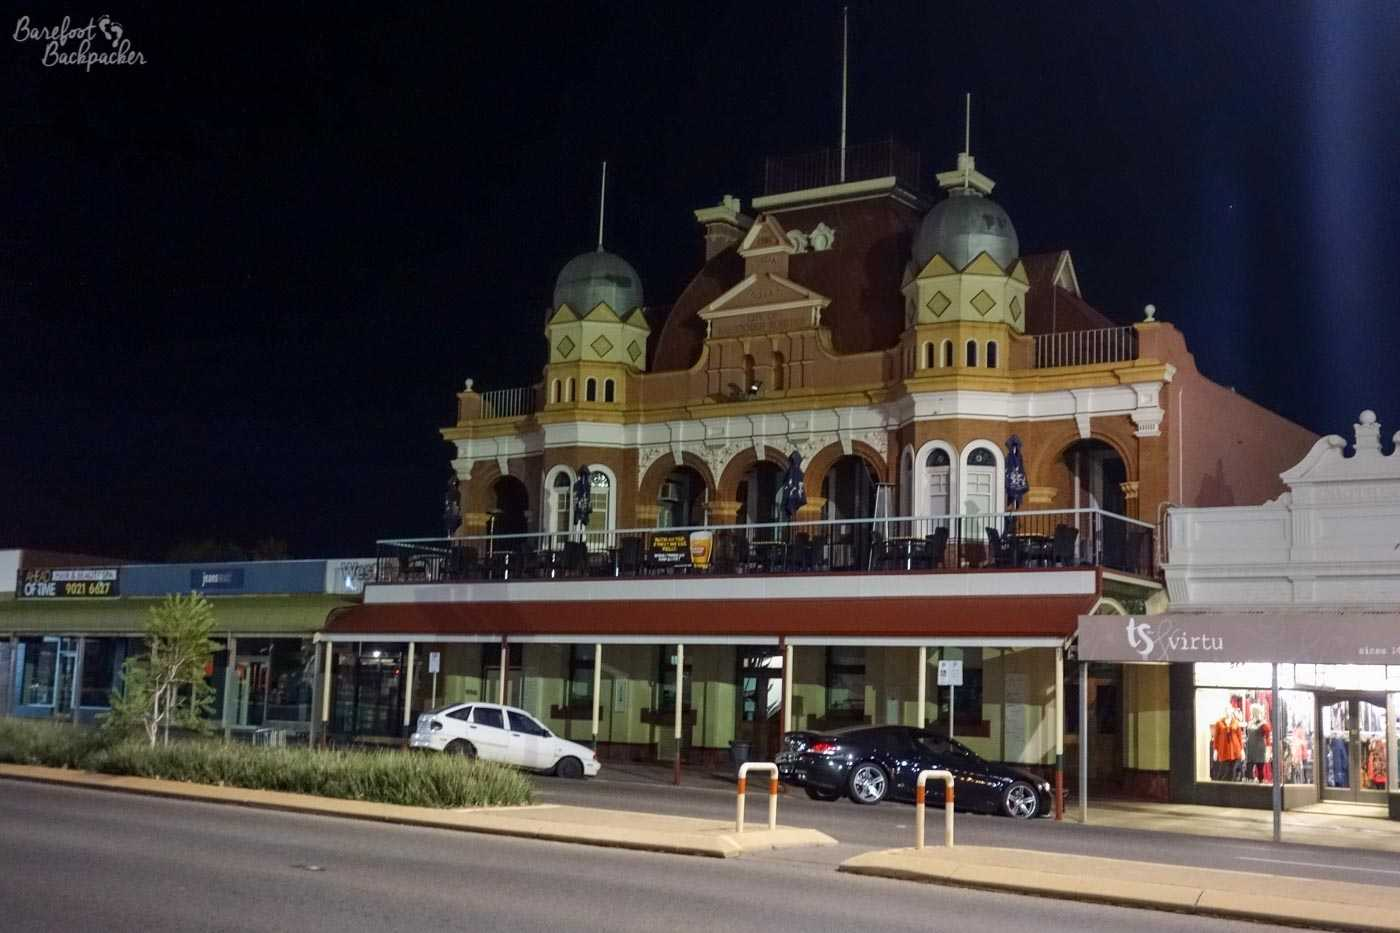 The main street in Kalgoorlie – shops and a pub. The shops are all one storey high but the pub, that's a pretty ornate, almost church-like edifice, built on top of the one storey ordinary building, with two rounded towers on a balcony either side of a Victorian-era frontage and a taller tower with an aerial on top. Odd.